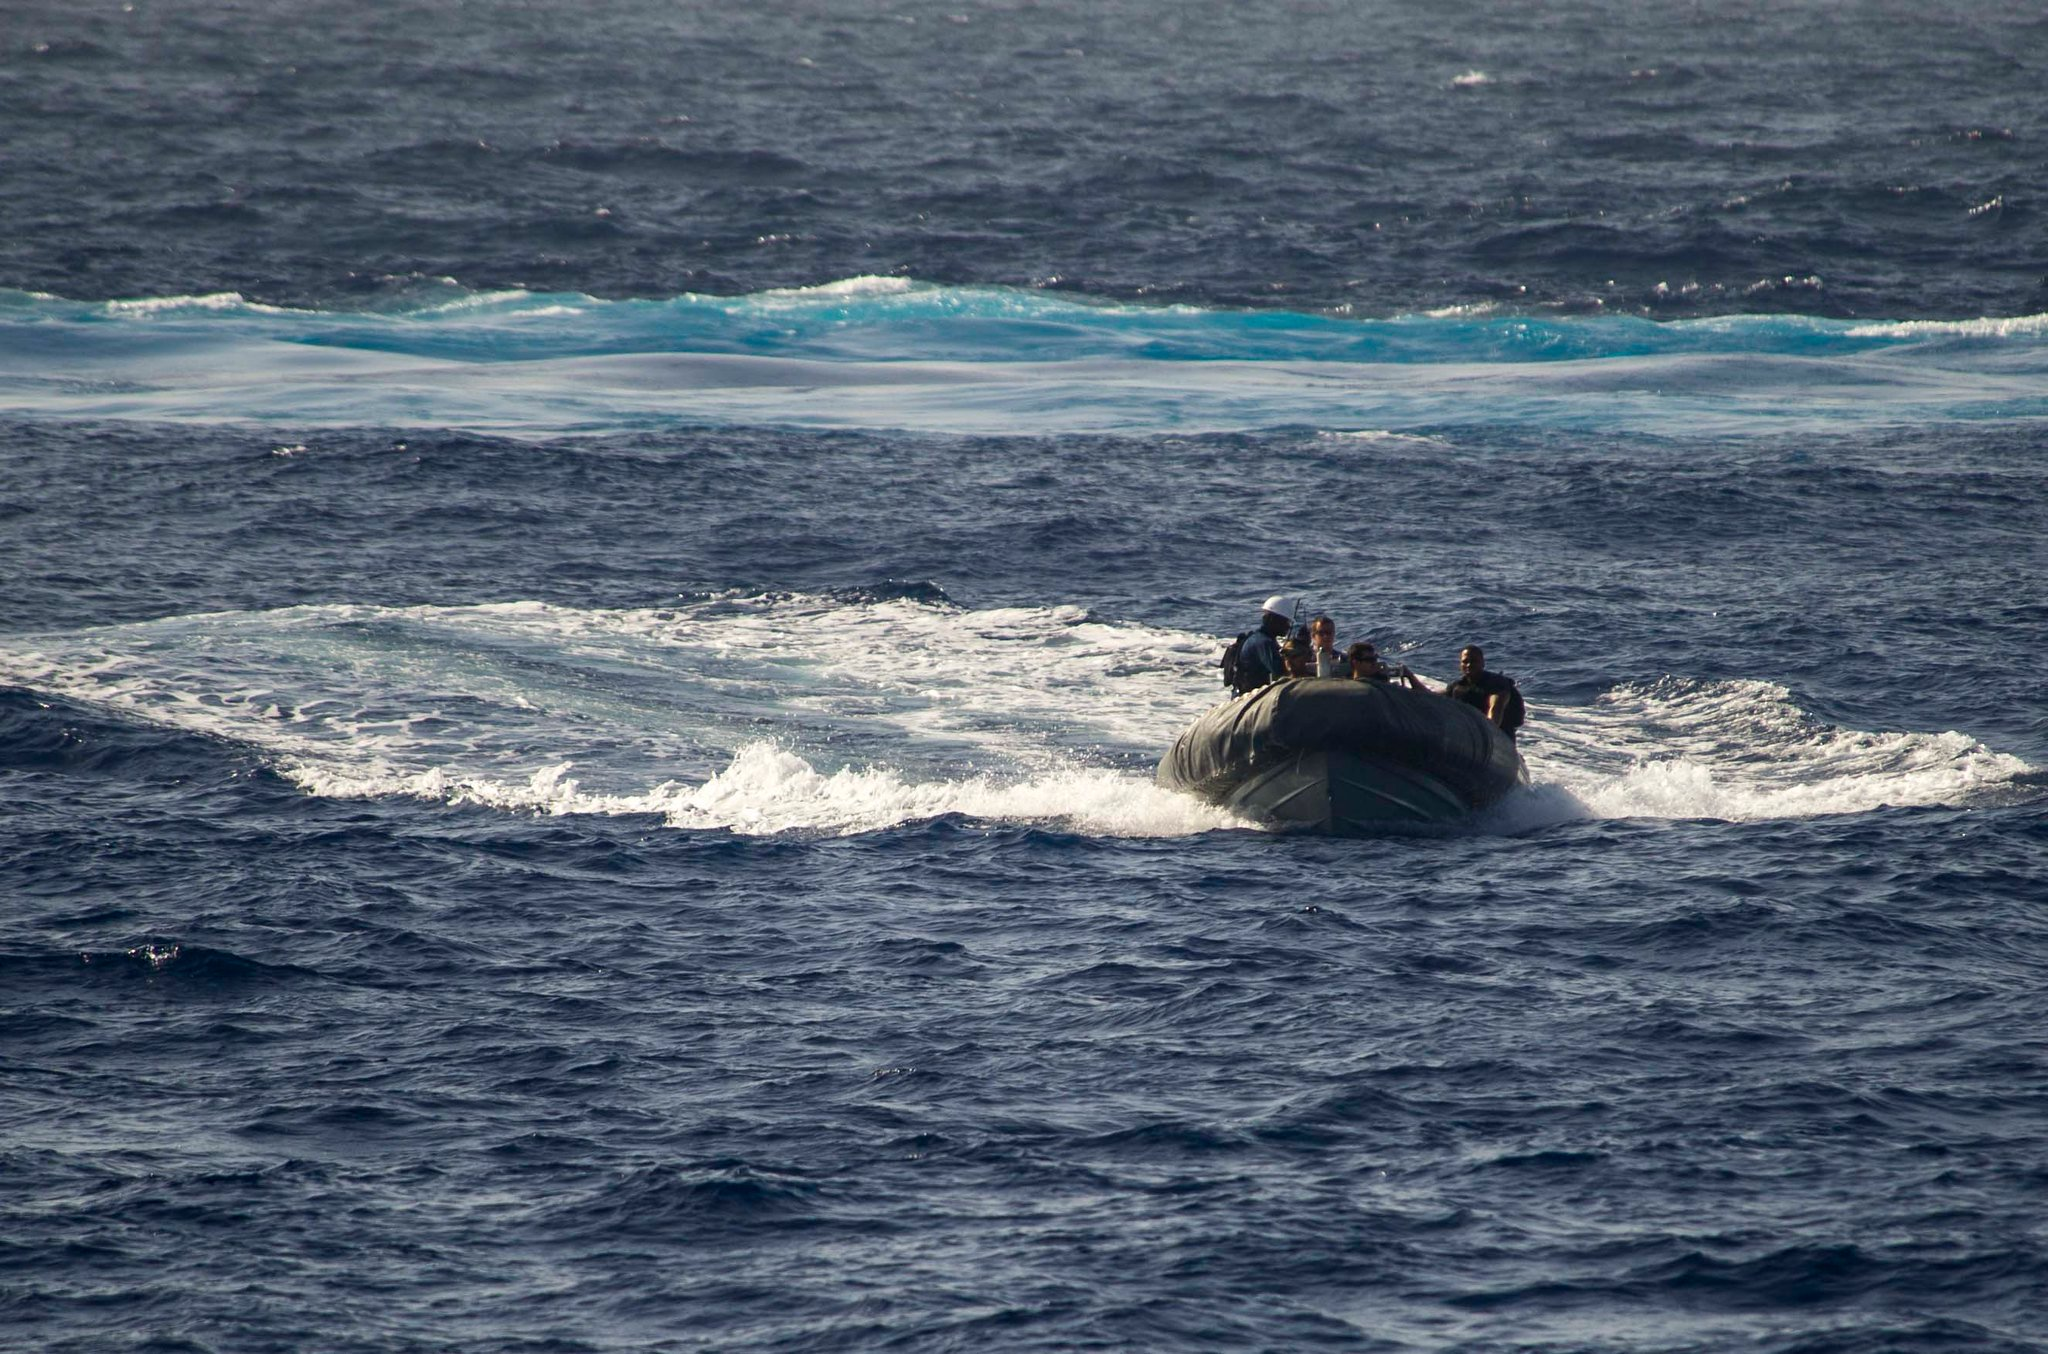 Offshore processing doesn't stop the boats, Australian experts warn